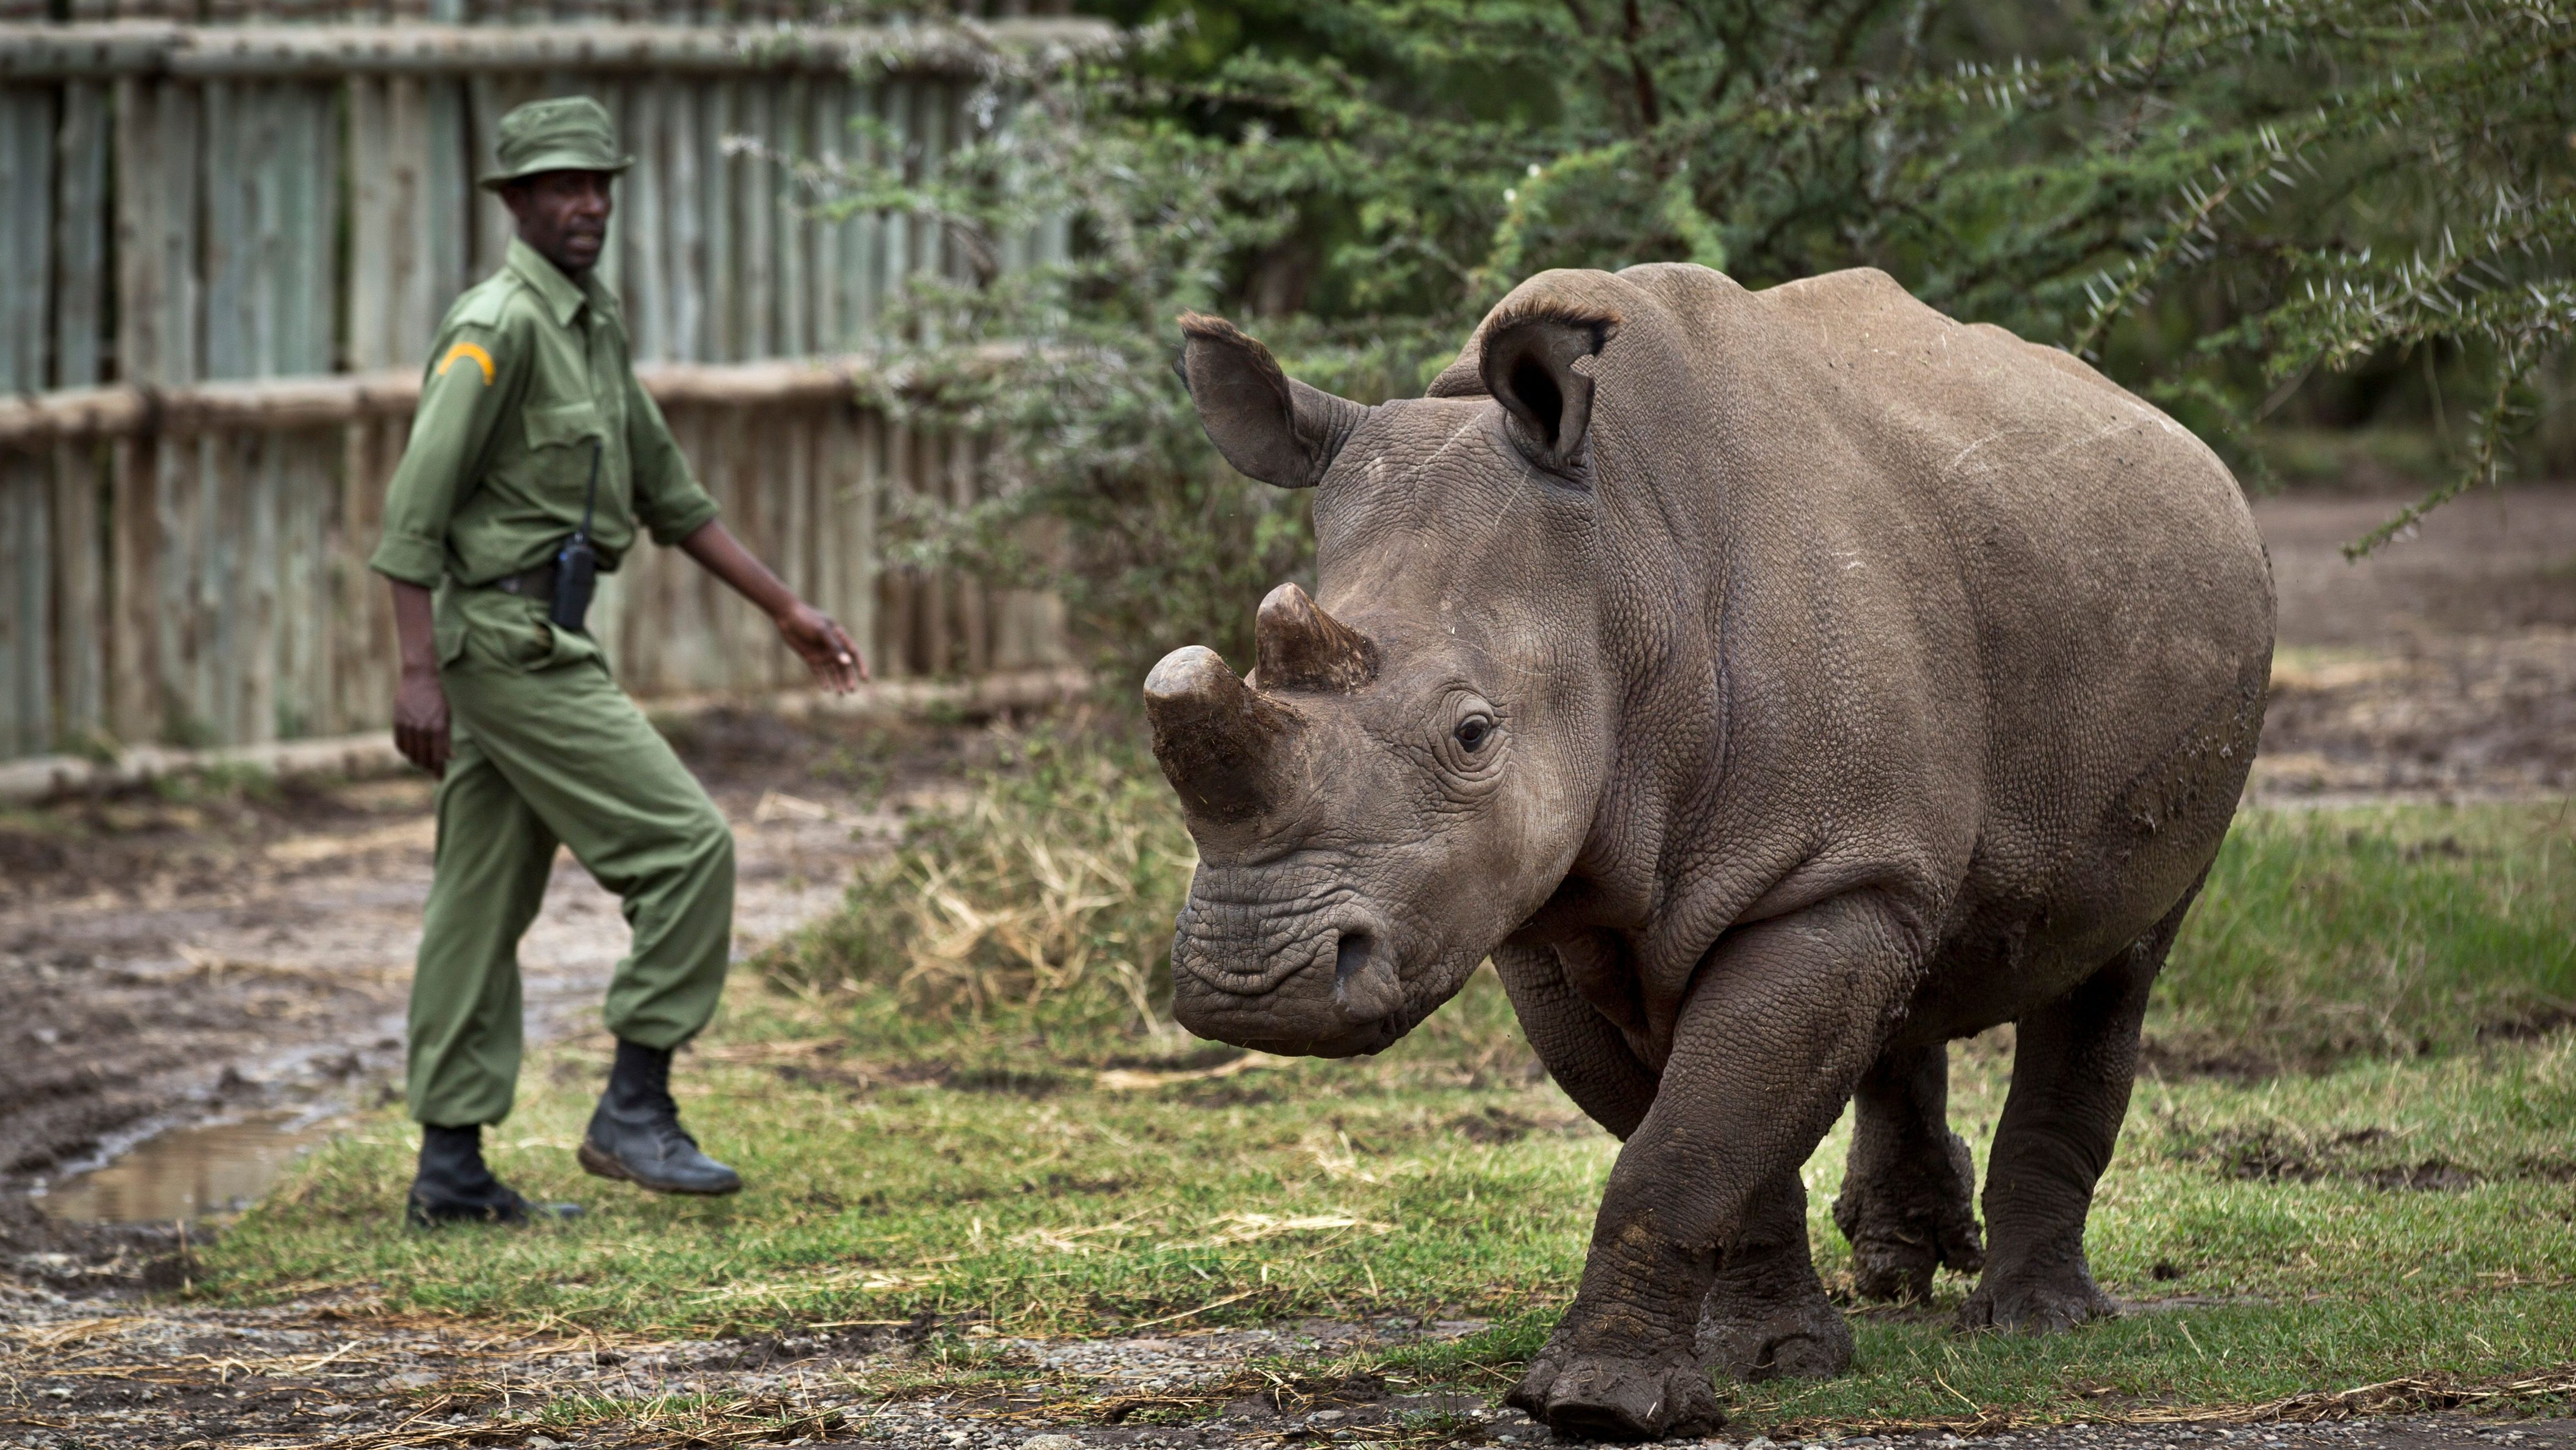 In this file photo taken Tuesday, Dec. 2, 2014, keeper Mohamed Doyo walks with female northern white rhino Fatu as she is let out of her pen to graze, at the Ol Pejeta Conservancy in Kenya. A southern white rhino has become pregnant through artificial insemination at the San Diego Zoo Safari Park — giving hope for efforts to save a subspecies of one of the world's most recognizable animals, researchers announced Thursday, May 17, 2018. If she does, researchers hope someday she could serve as a surrogate mother and could give birth to the related northern white rhino, whose population is down to two females after decades of decimation by poachers.